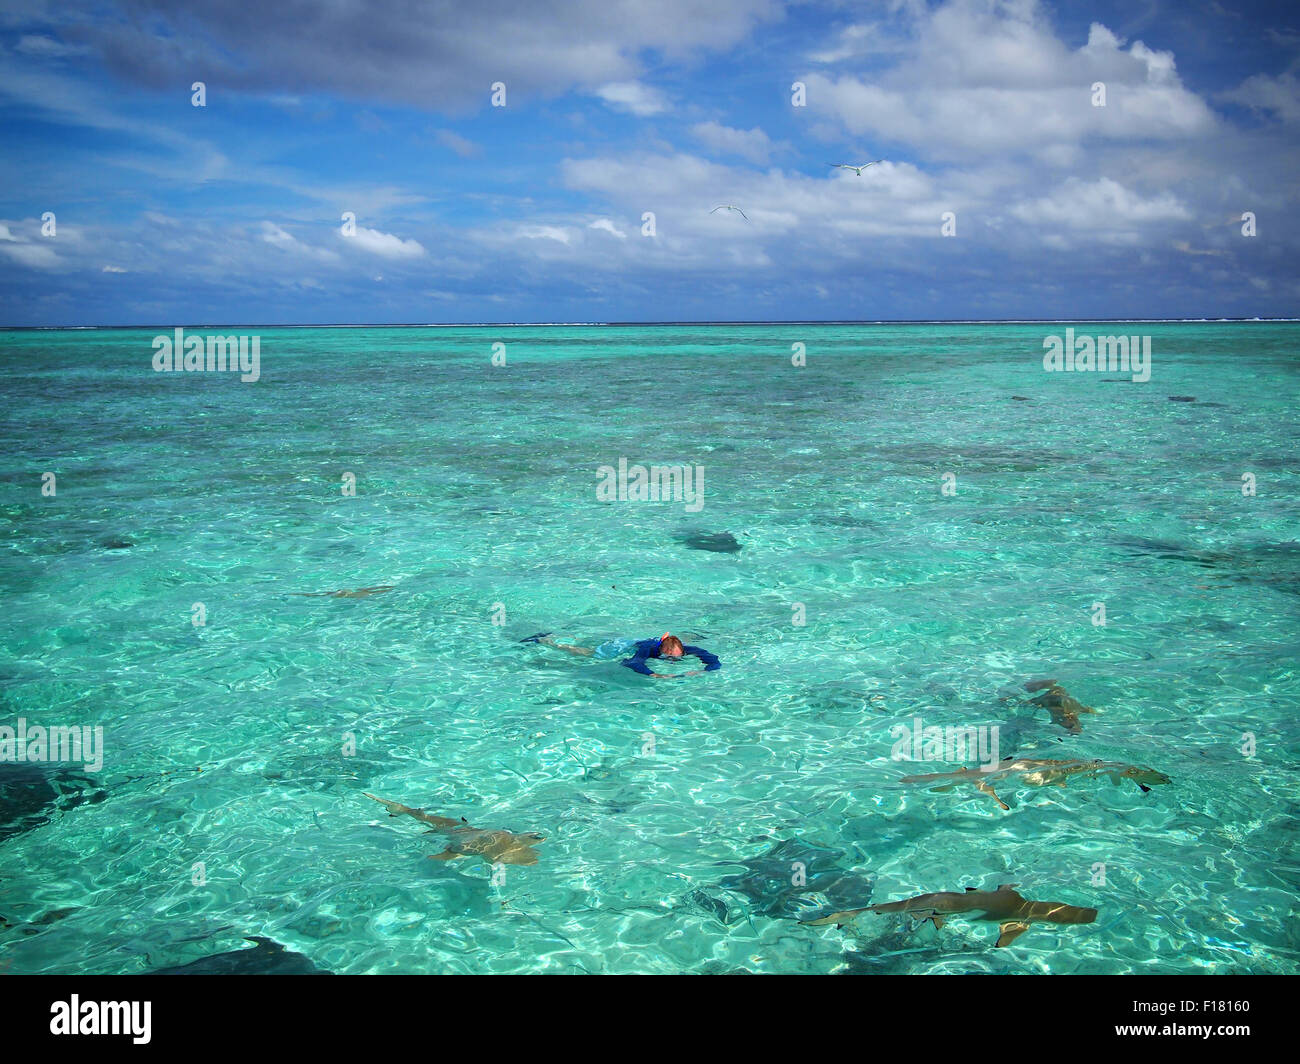 A tourist in sun protective swimwear snorkeling with sharks and stingrays in the shallow, clear water of the lagoon - Stock Image